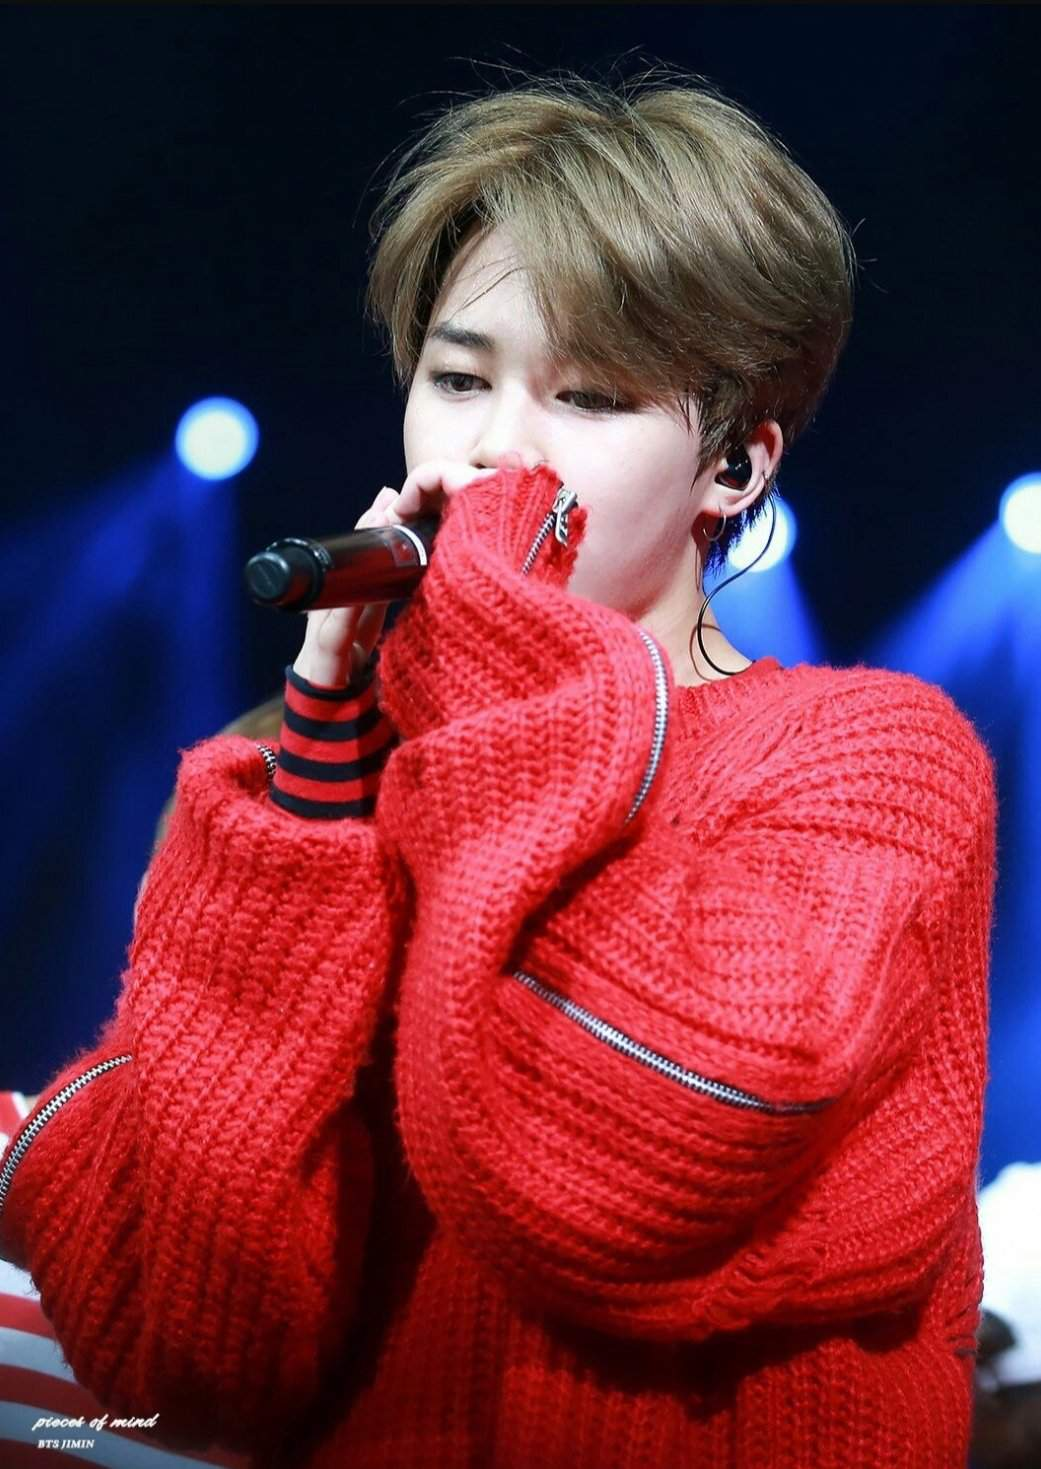 jiminrainbow_red2